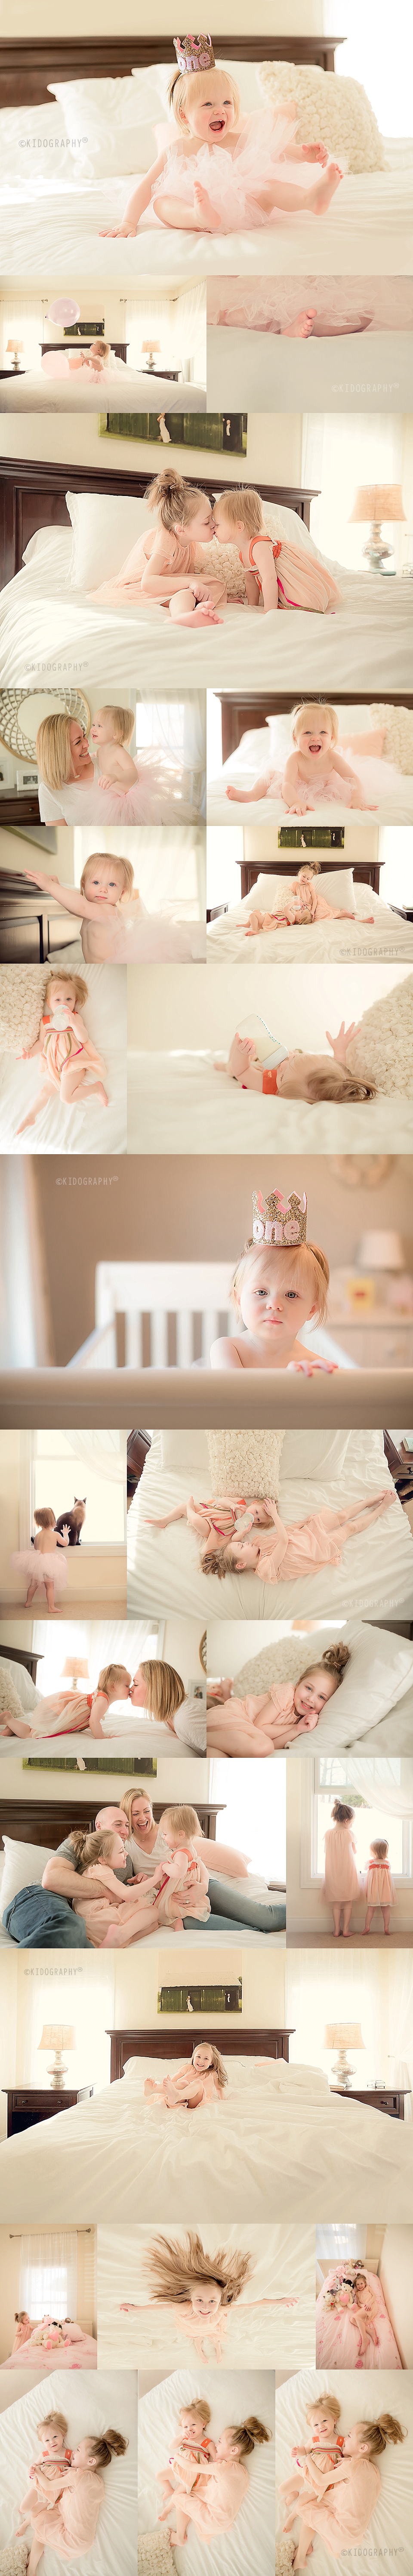 Kidography by Dania | Albany New York Child Photographer